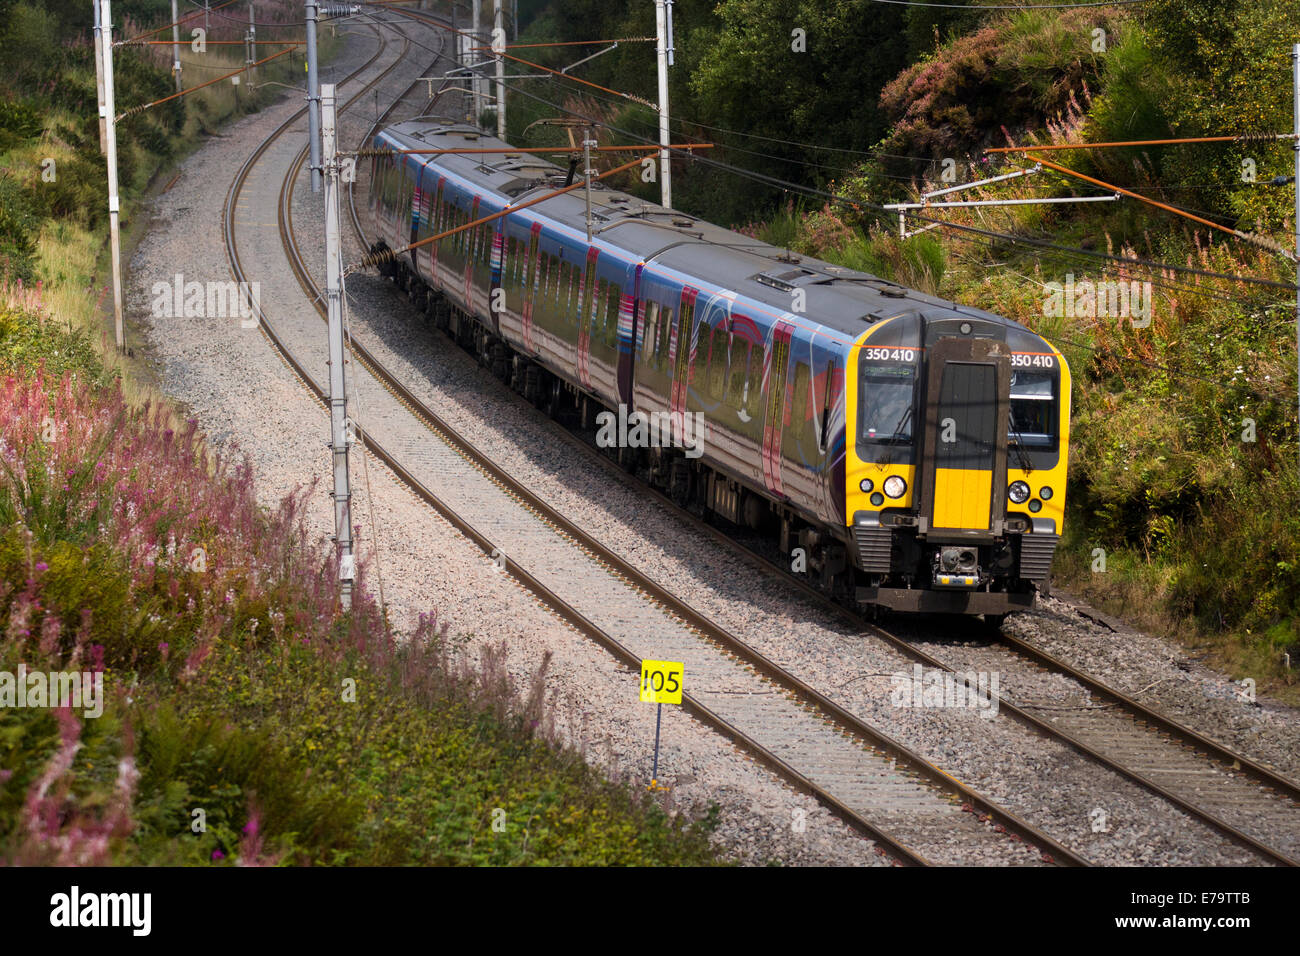 Power lines, and gantries for electric trains   British Rail Class 350 410 Desiro British Railways  Descending Train Stock Photo